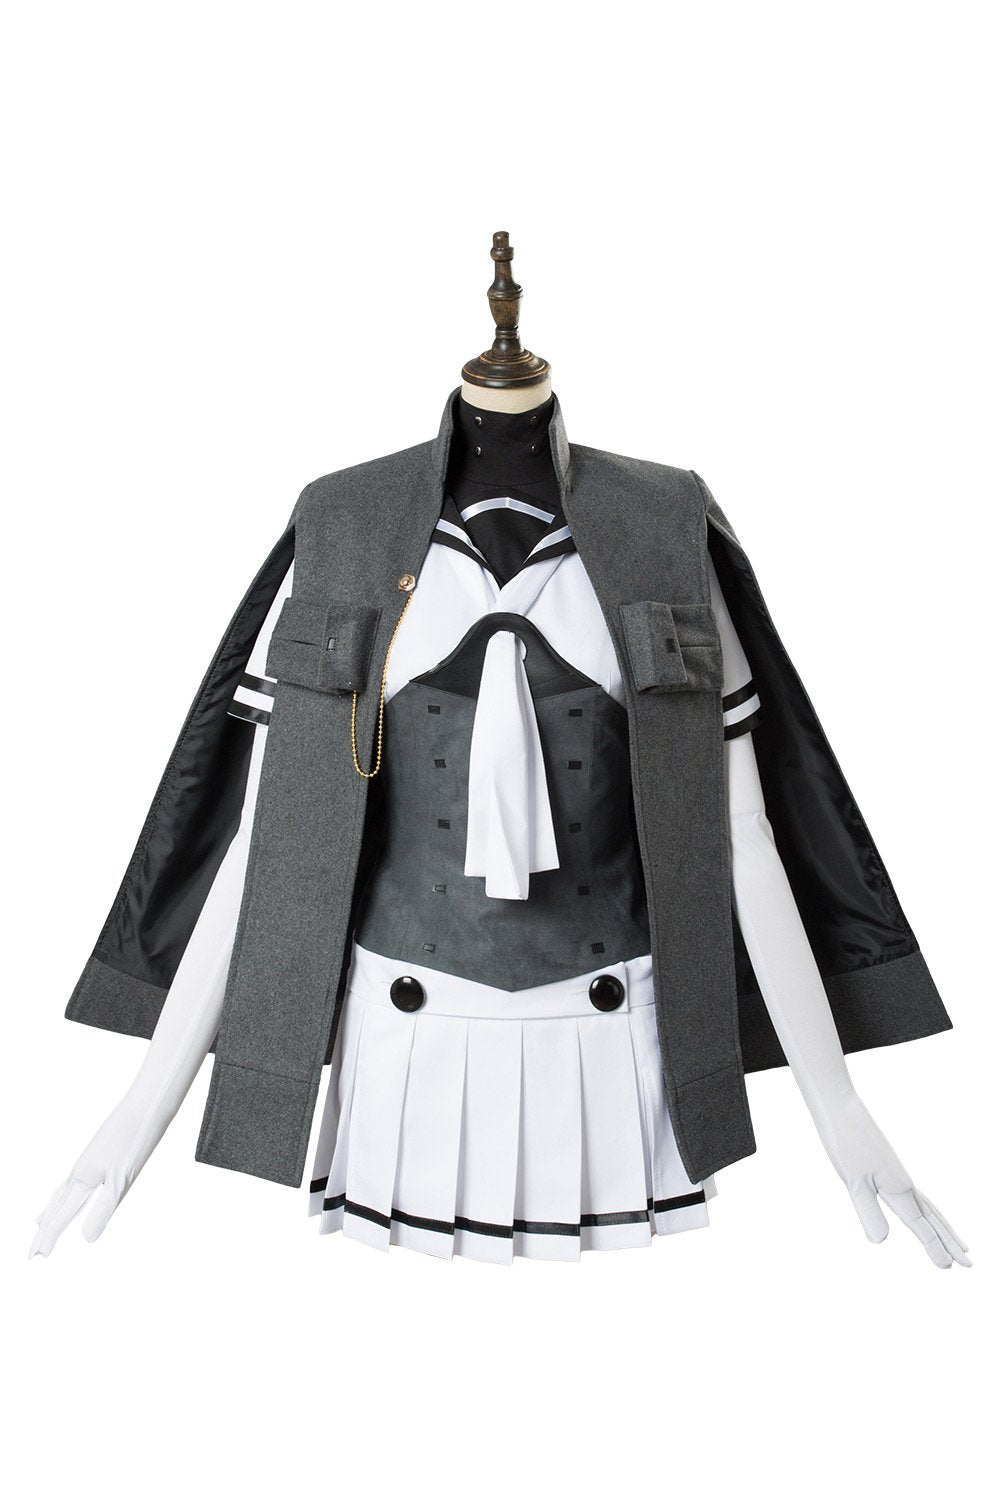 Kantai Collection Suzutsuki Outfit Cosplay Costume